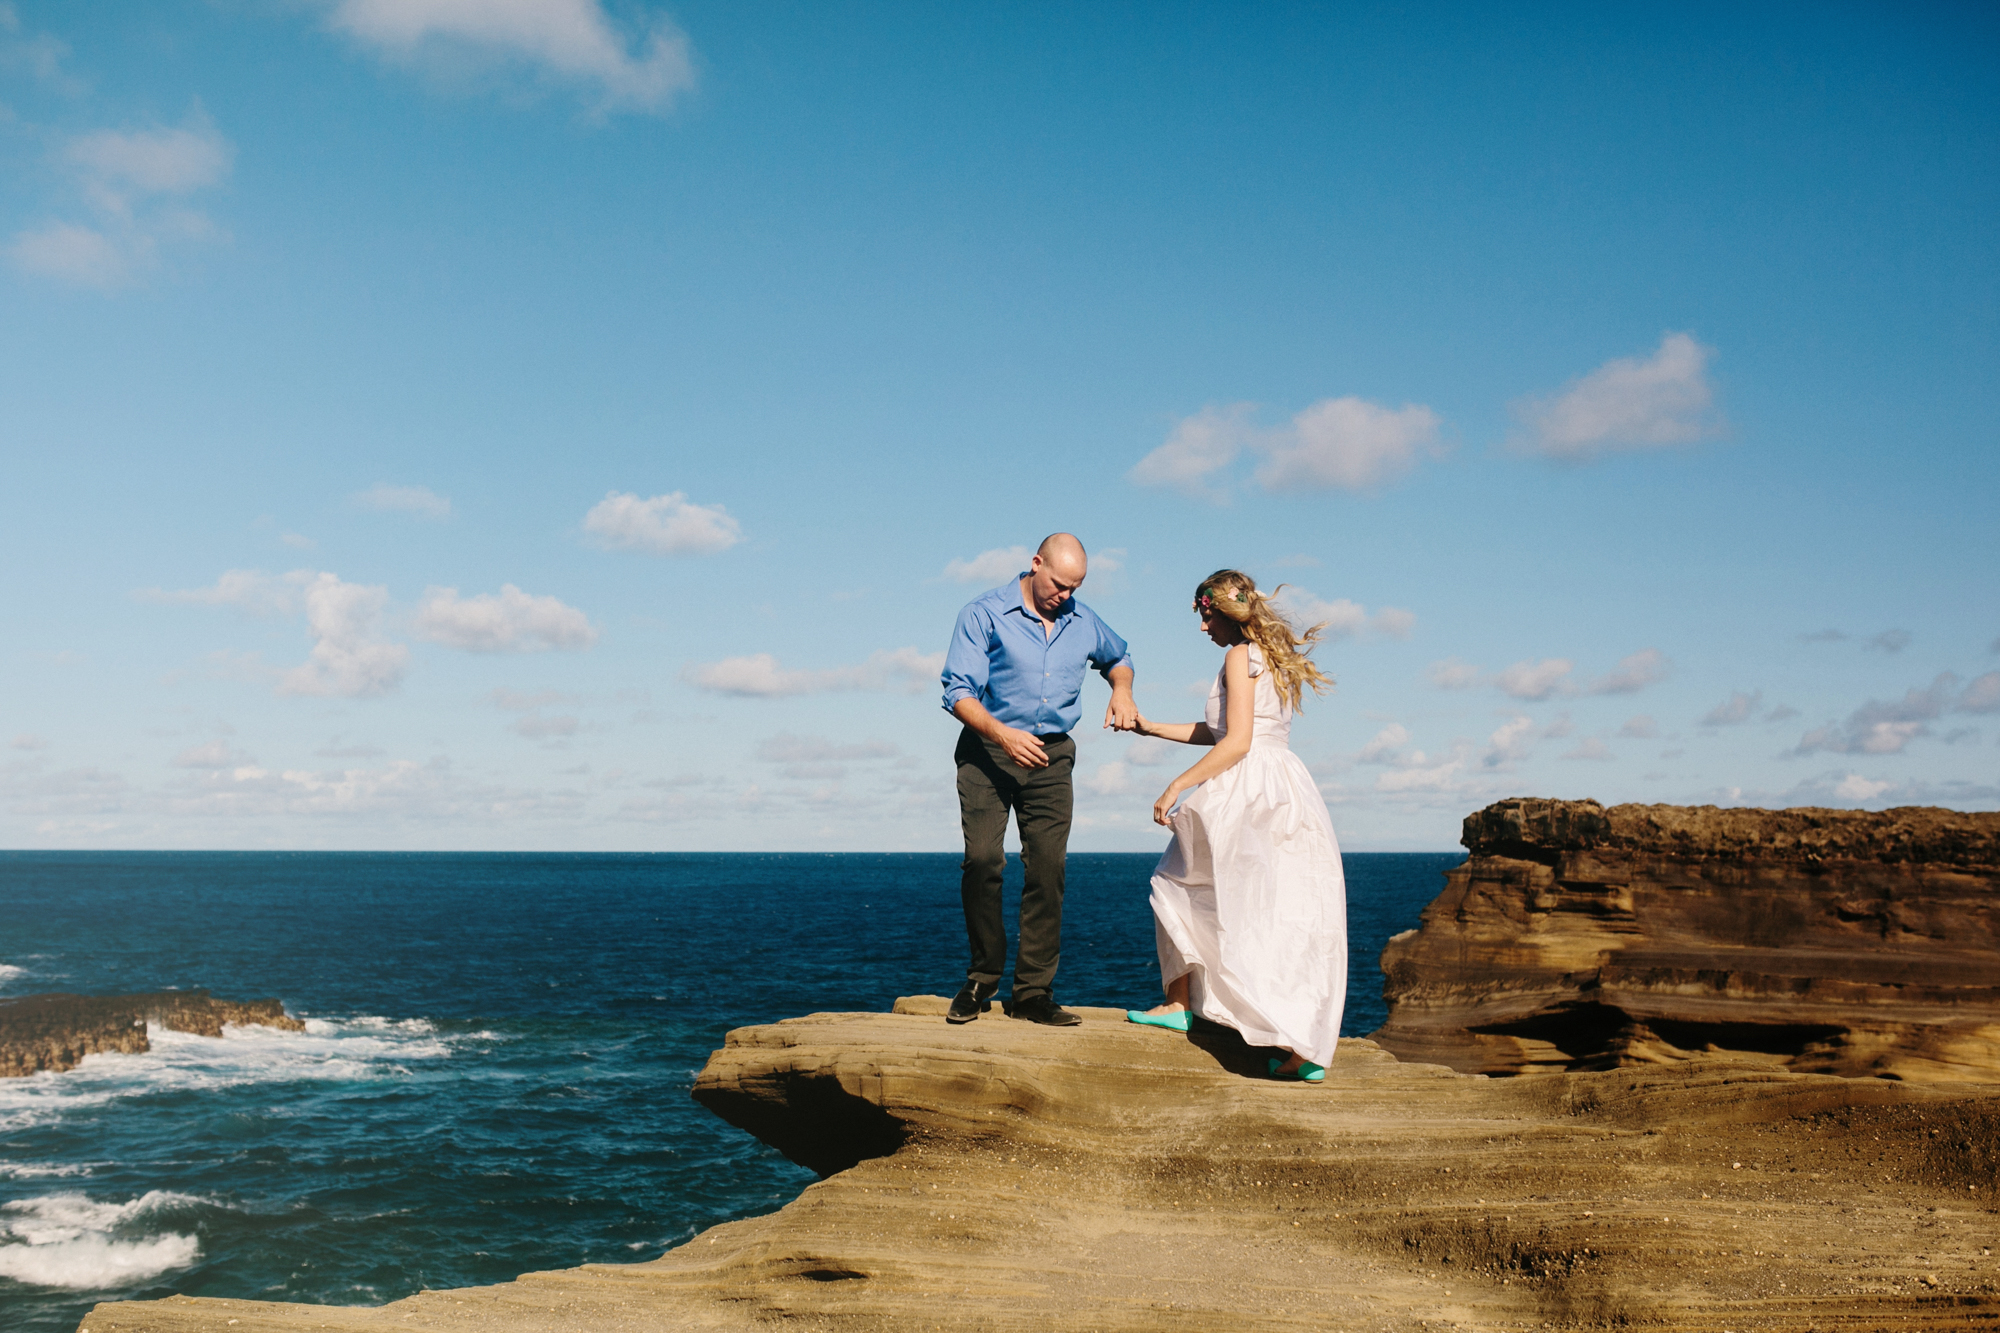 Oahu Wedding Photographer- Hawaii Destination Wedding- kahauloa cove- Grace and Jaden Hurtienne Photography (5).jpg